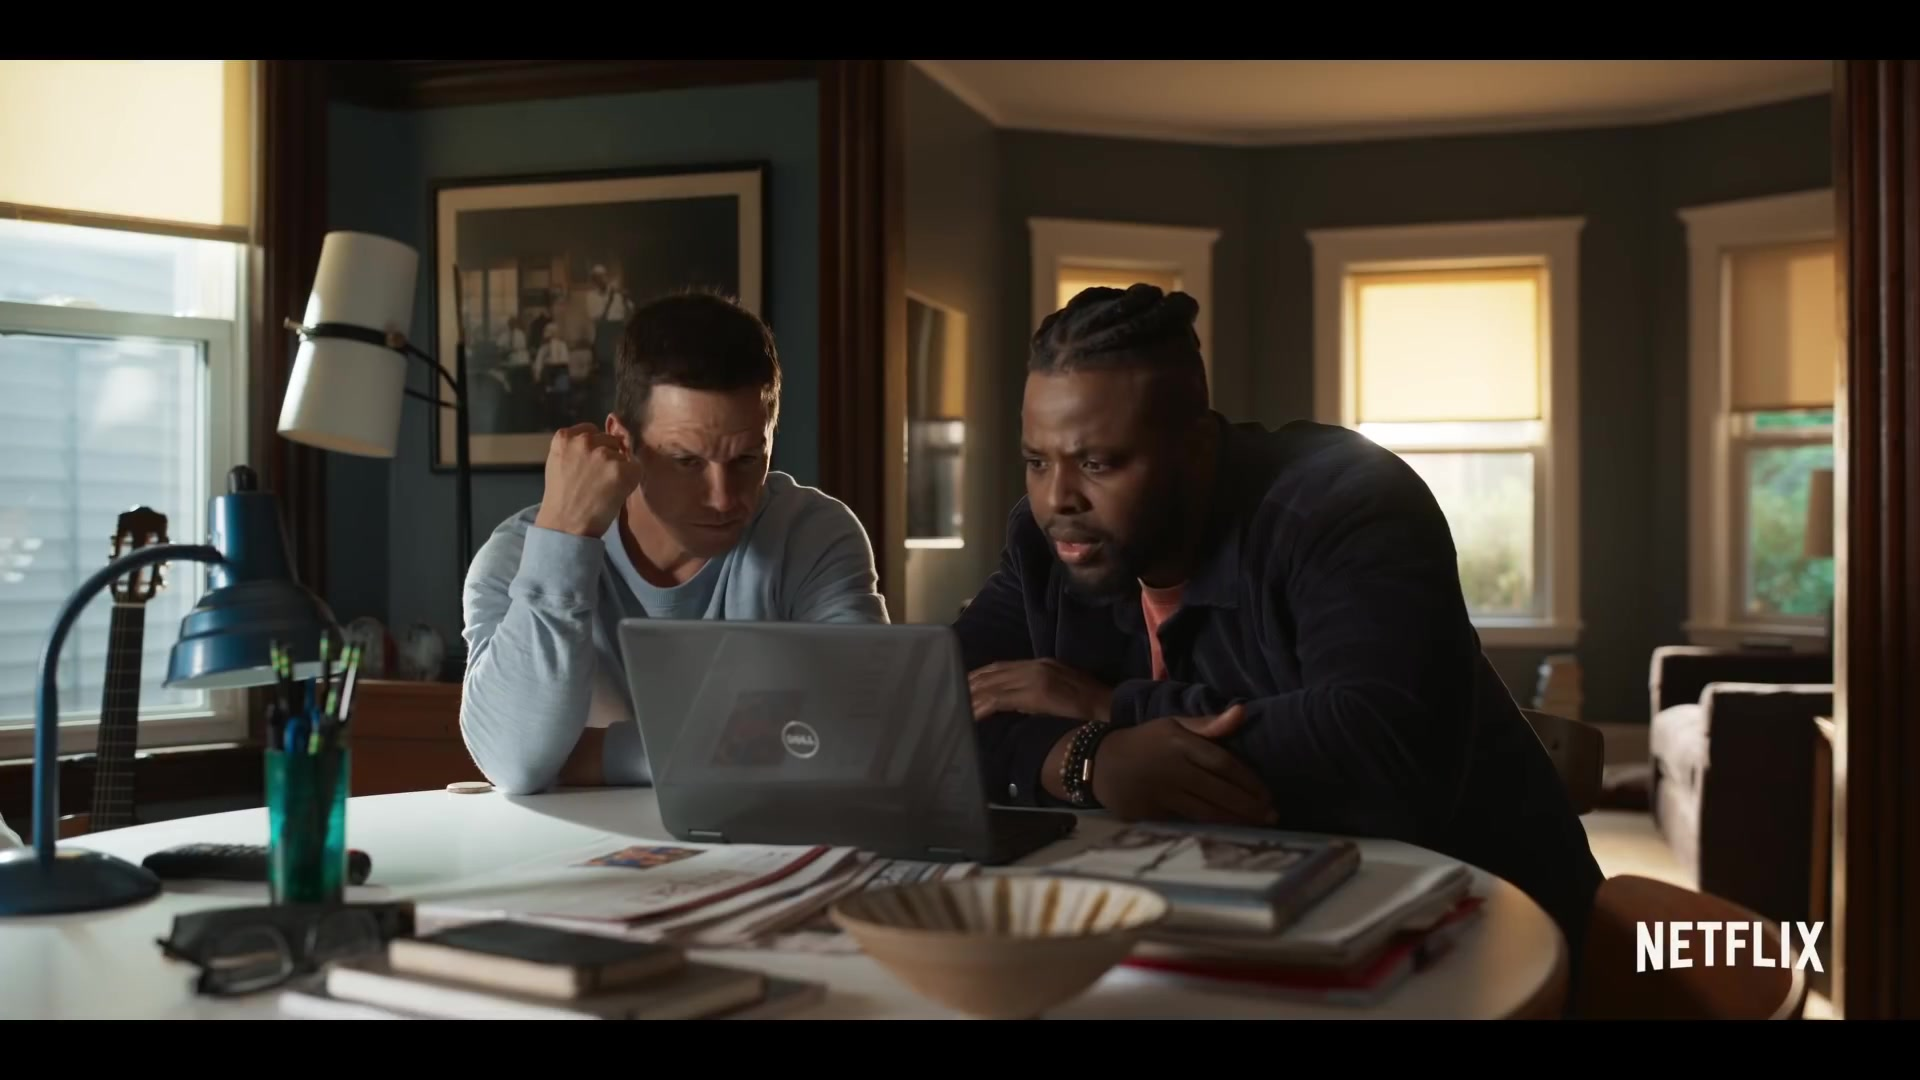 Dell Laptop Used By Mark Wahlberg And Winston Duke In Spenser Confidential 2020